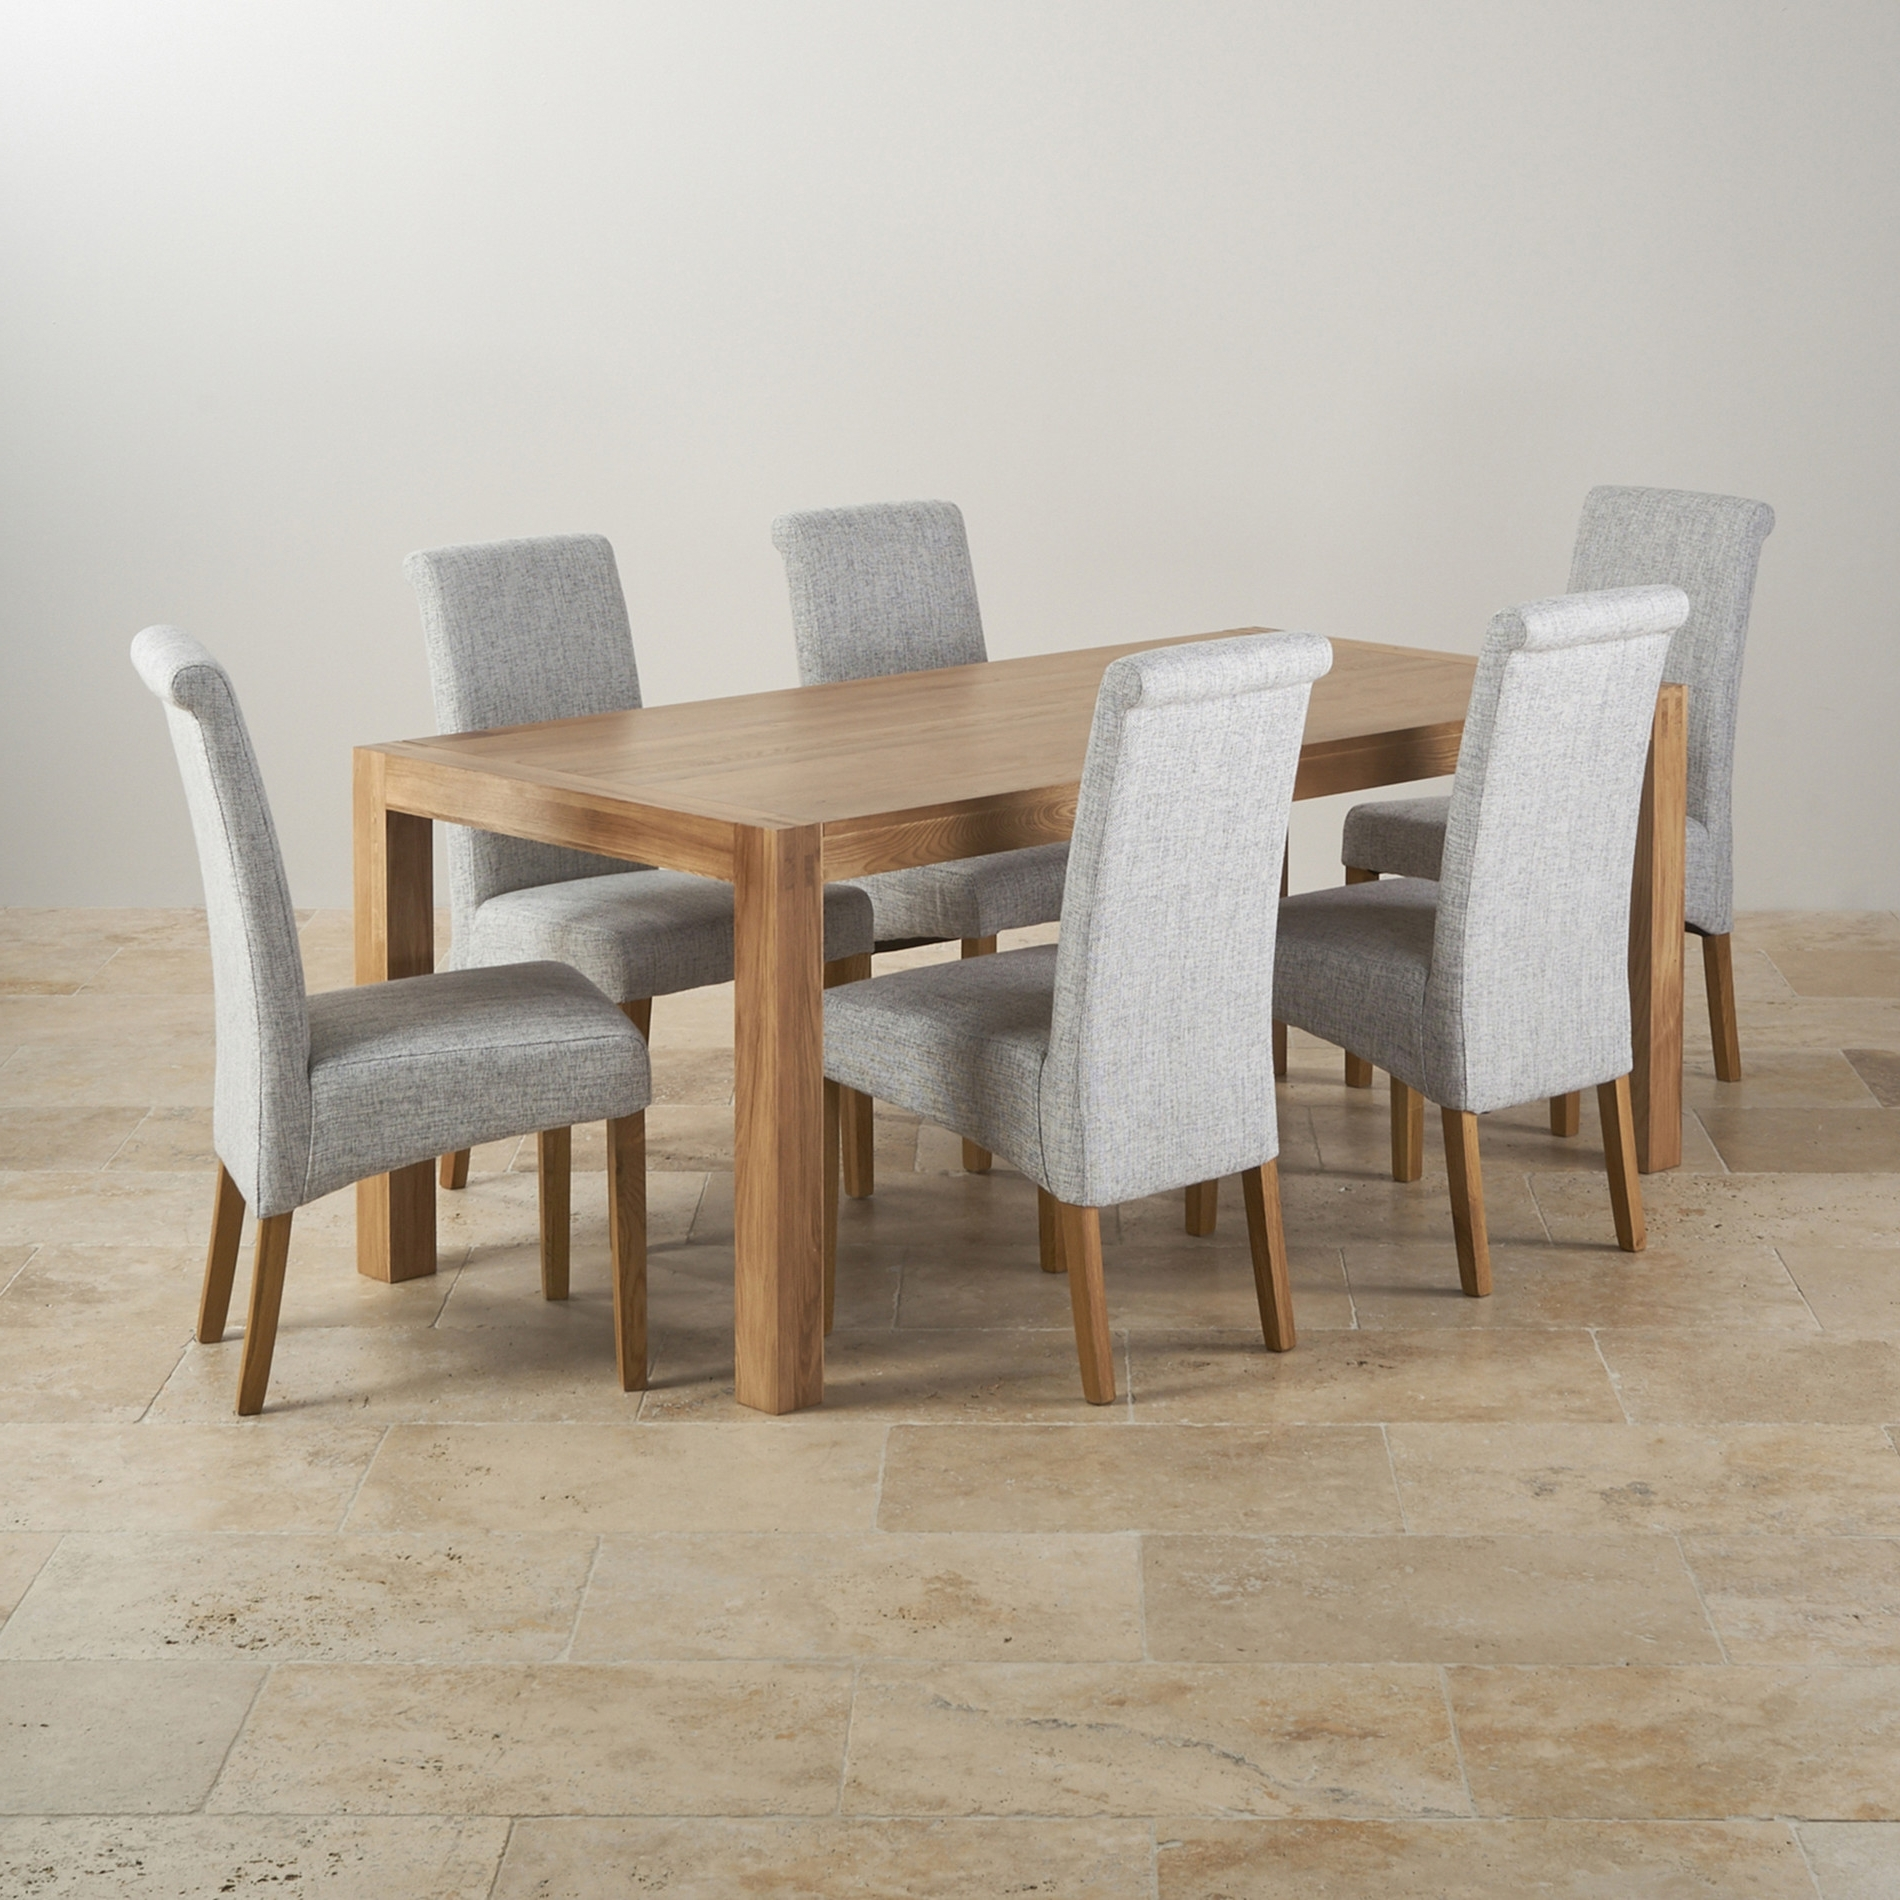 Dining Tables With Grey Chairs In Most Up To Date Alto Solid Oak 6Ft Dining Table With 6 Grey Fabric Chairs Ghost (View 15 of 25)